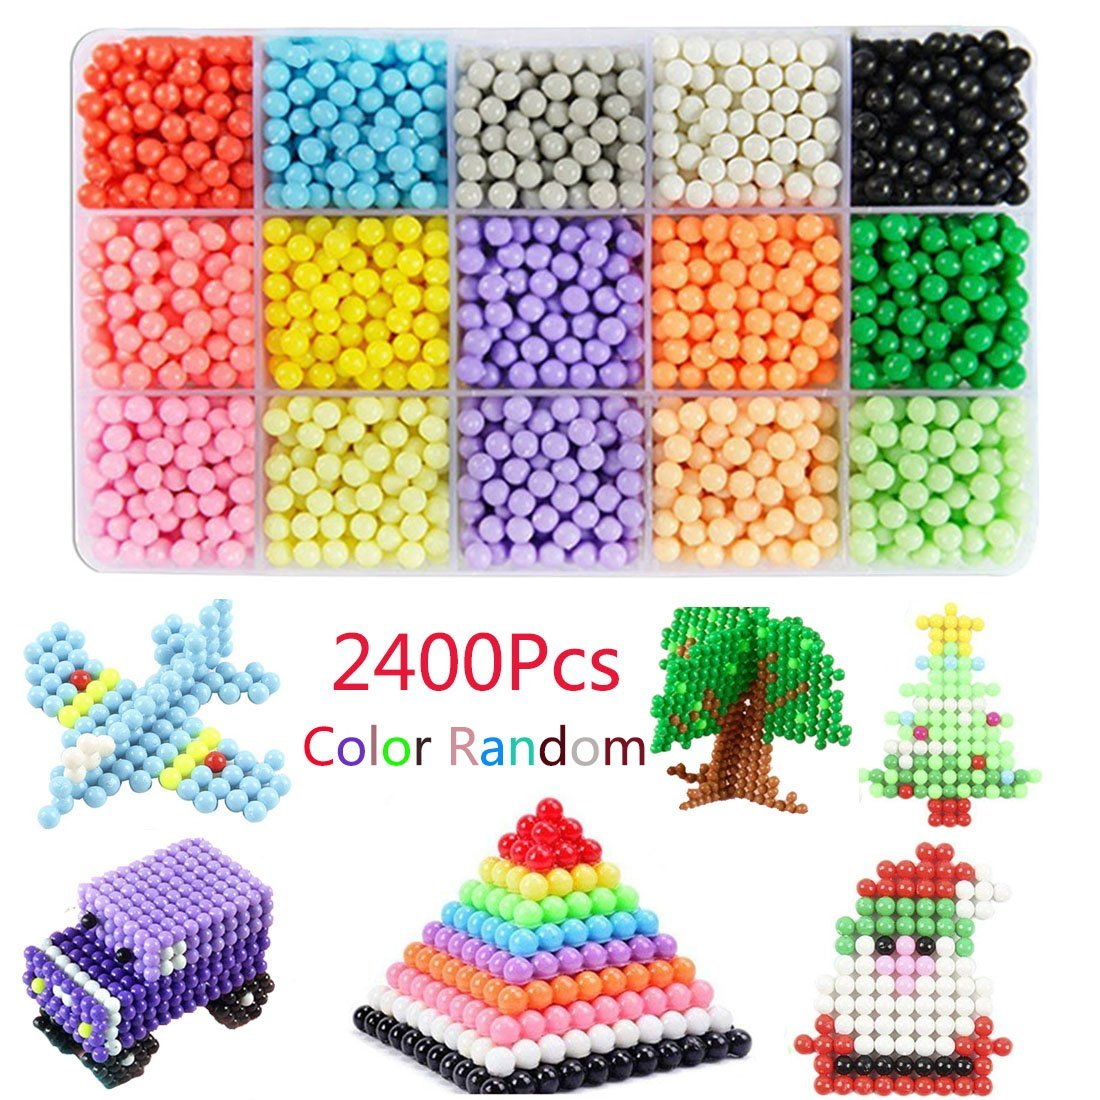 Fuse Beads Kit,Bagvhandbagro 3d Fuse Beads,2400 beads 15 colours Bead Refill Magic Beads with DIY Pegboard and Full Set Accessories,Educational Toys for Kids Beginners Activity Pack,Color Random